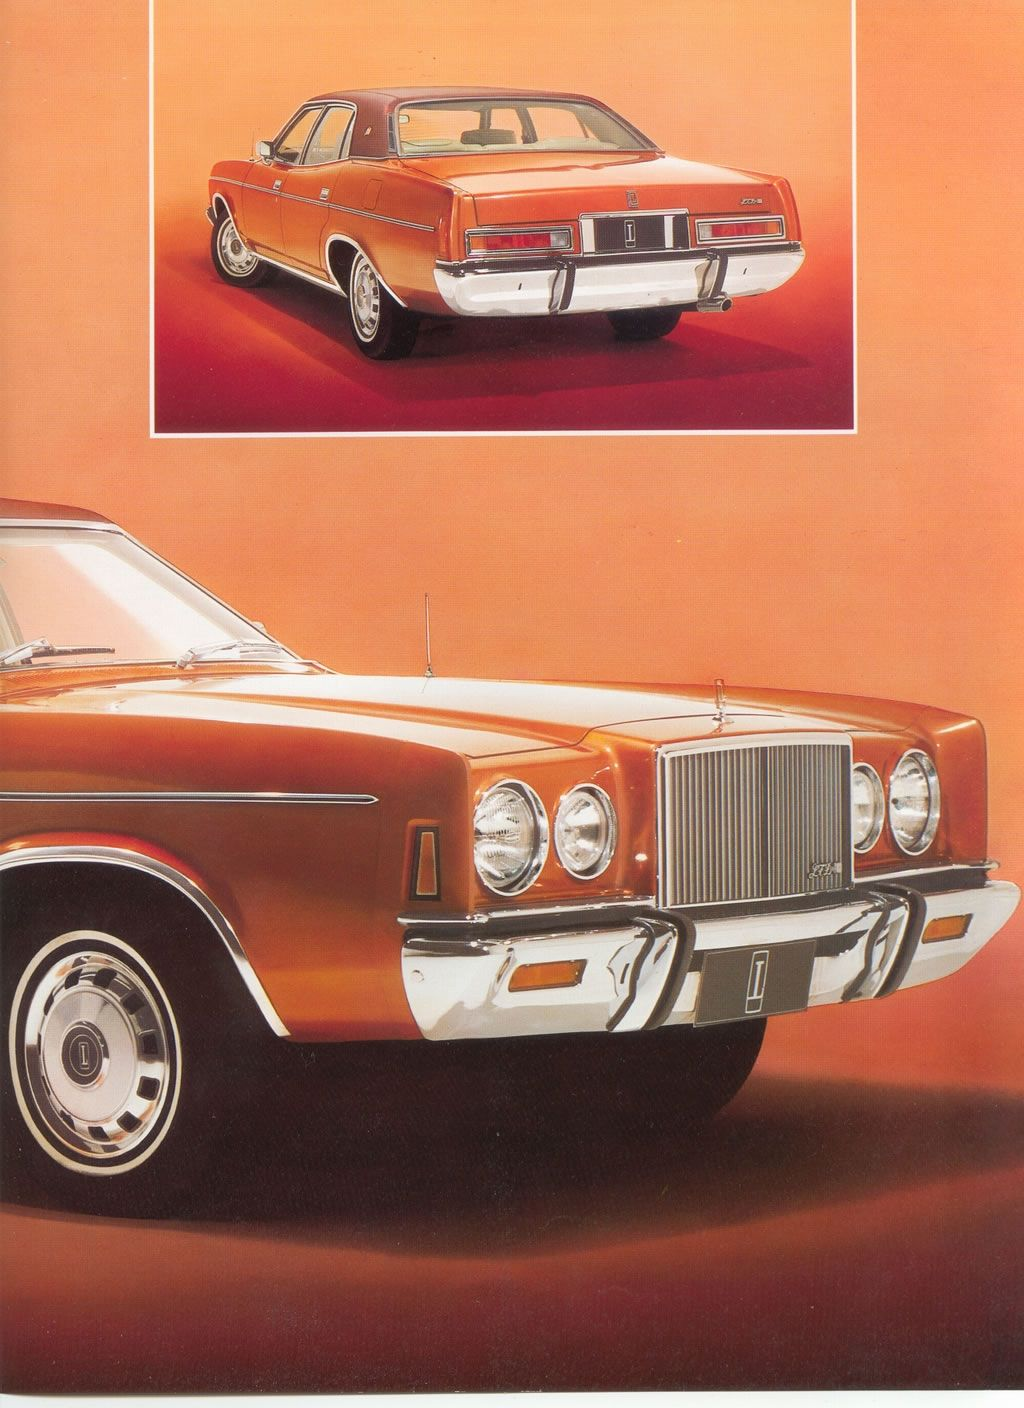 1978 Ford Australia LTD | Fairmonts,Fox Bodies,and other Ford cars ...